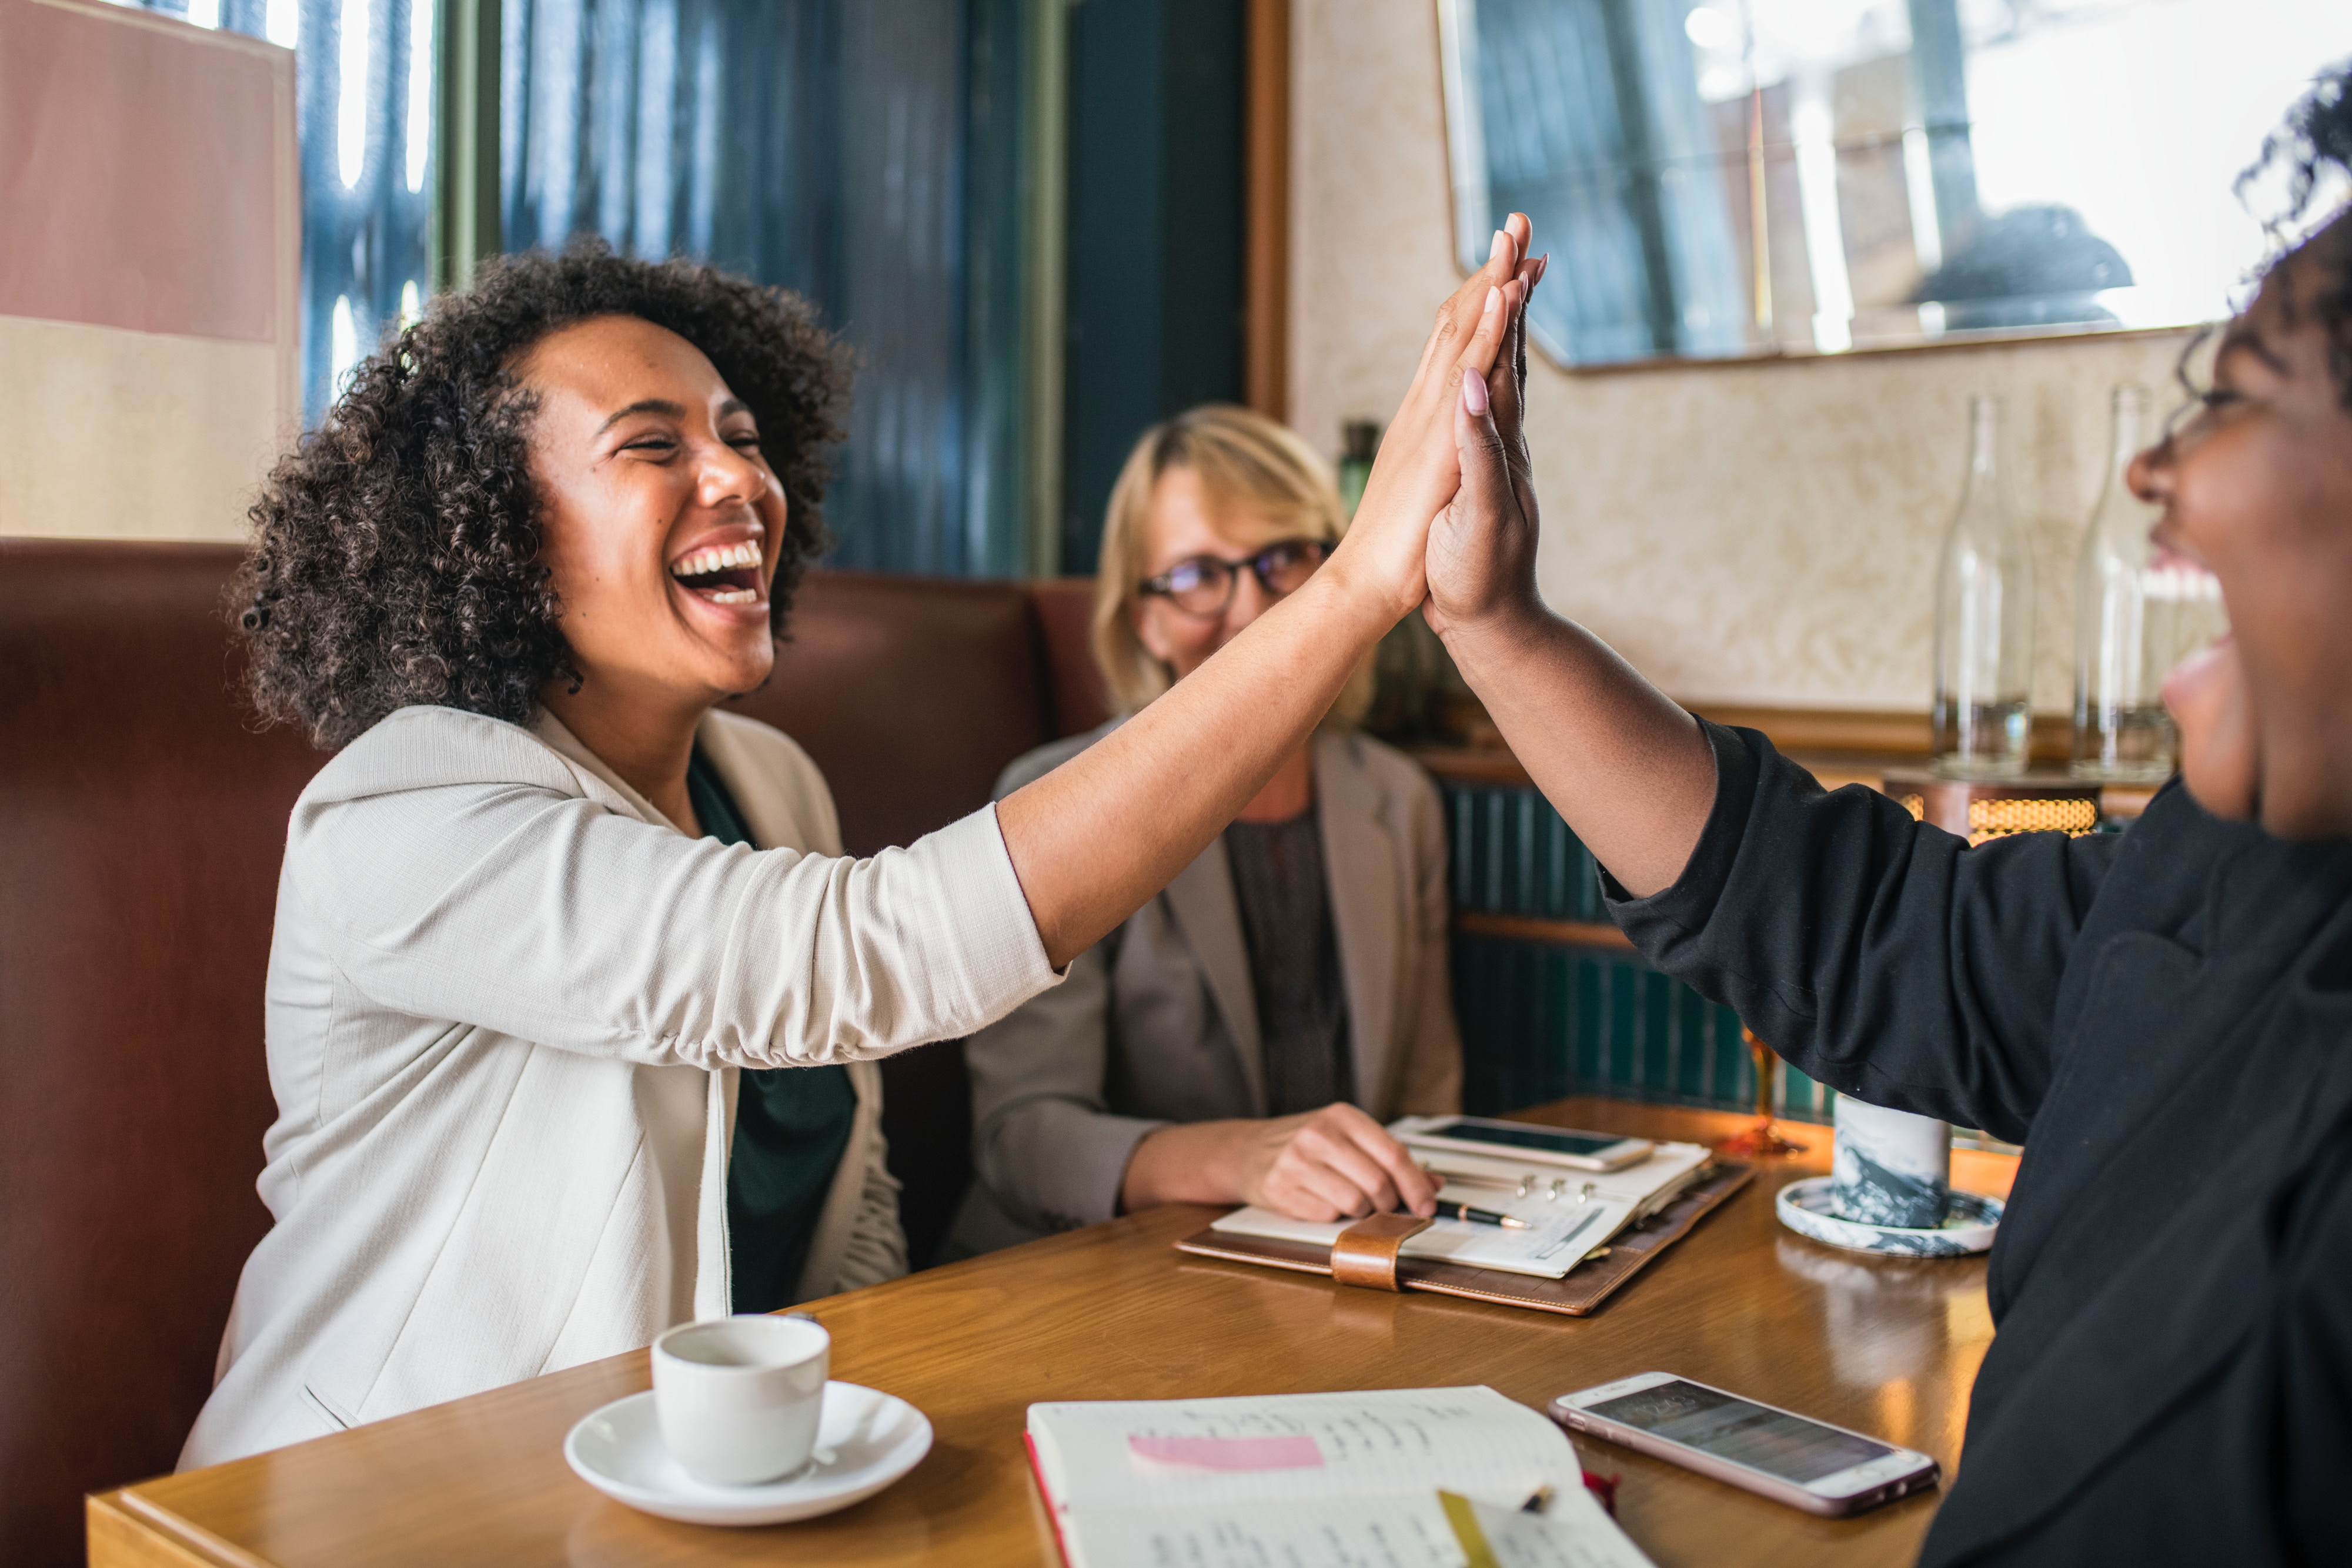 Two woman high five in a cafe